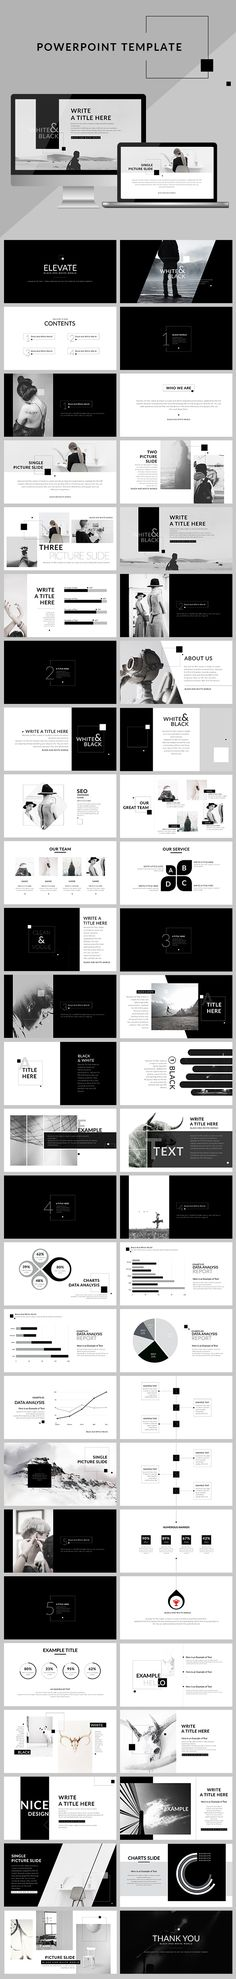 Black & White - Creative clean Powerpoint Presentation Template. Download here: https://graphicriver.net/item/black-white-creative-clean-powerpoint-presentation/16990669?ref=ksioks                                                                                                                                                                                 Más